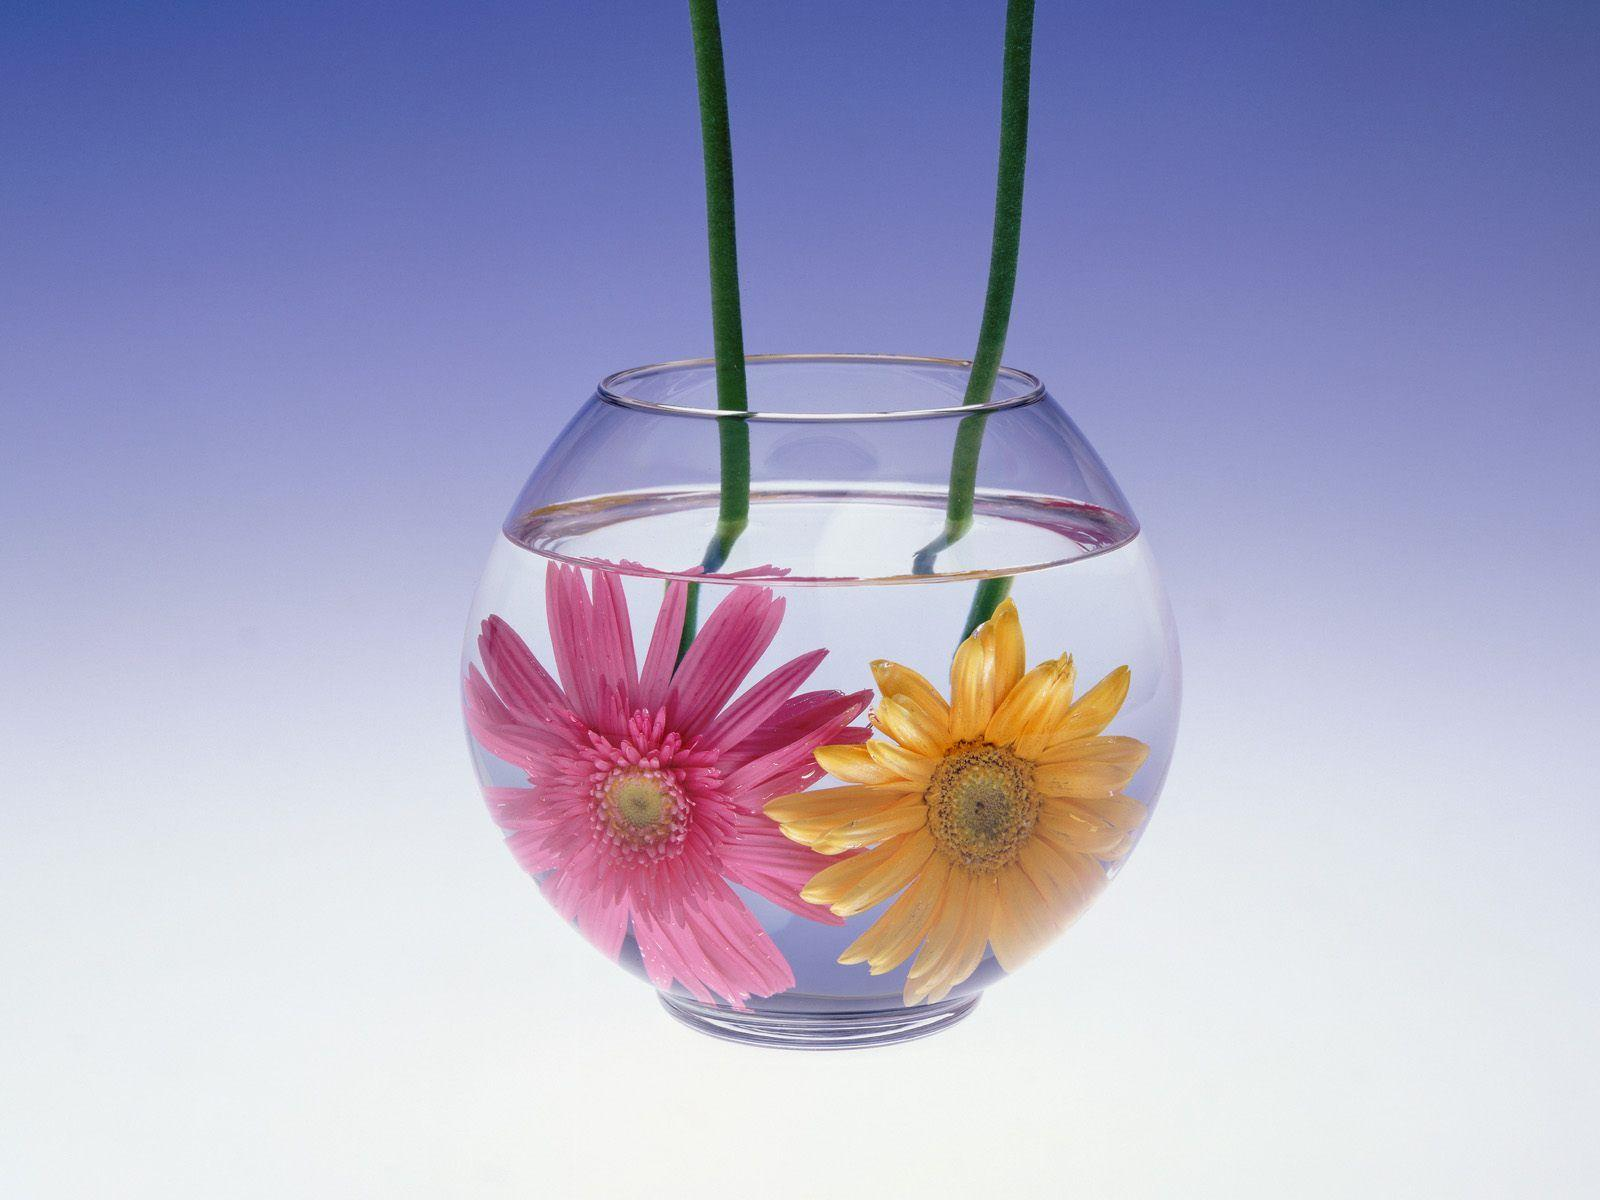 Flowers in Water Wallpapers | HD Wallpapers